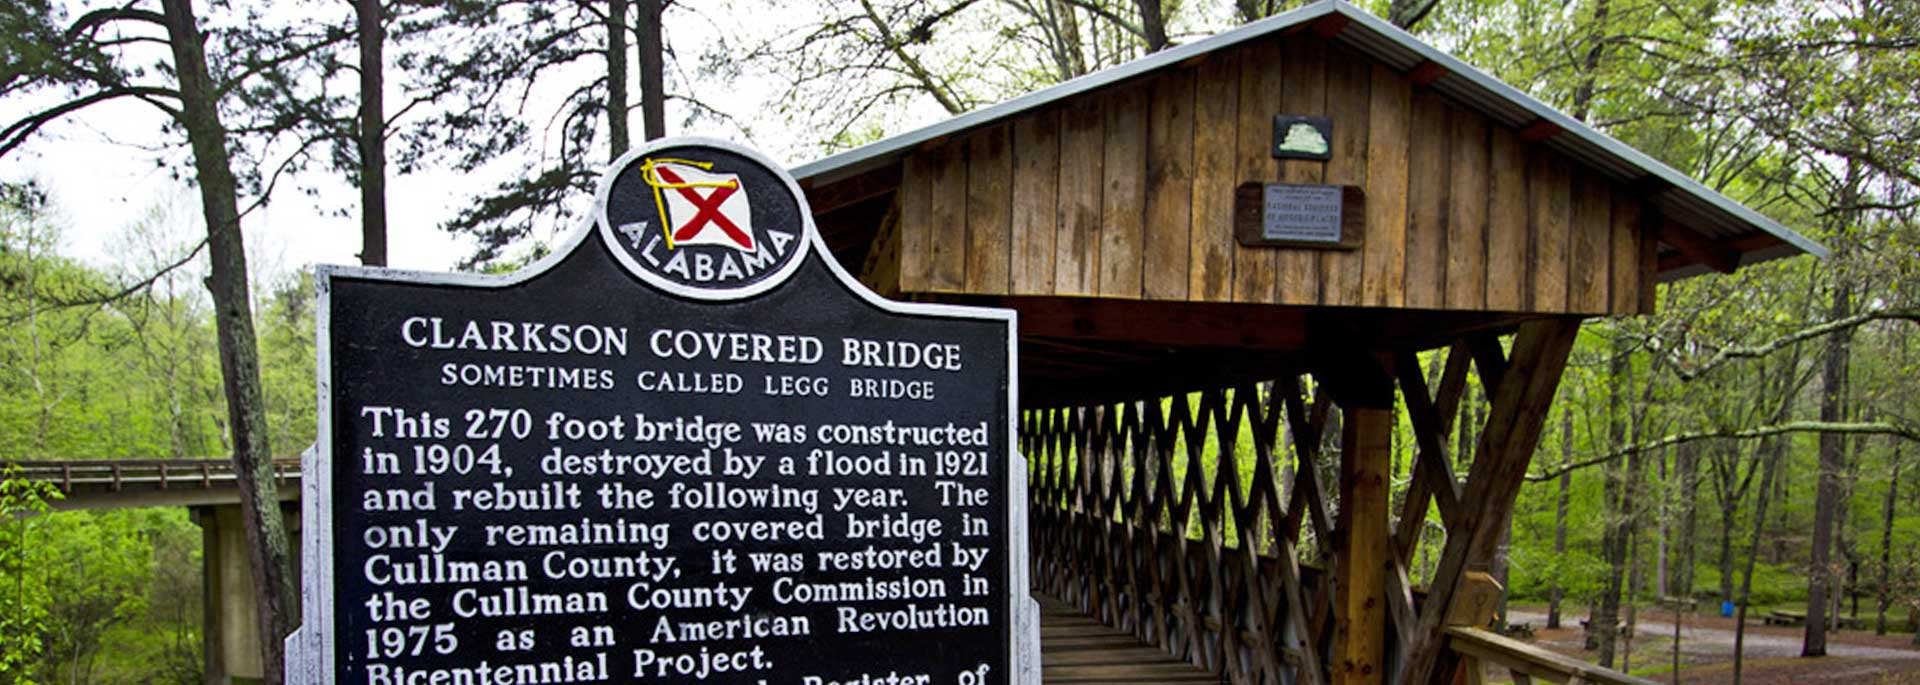 Clarkson Covered Bridge in Cullman County, Alabama